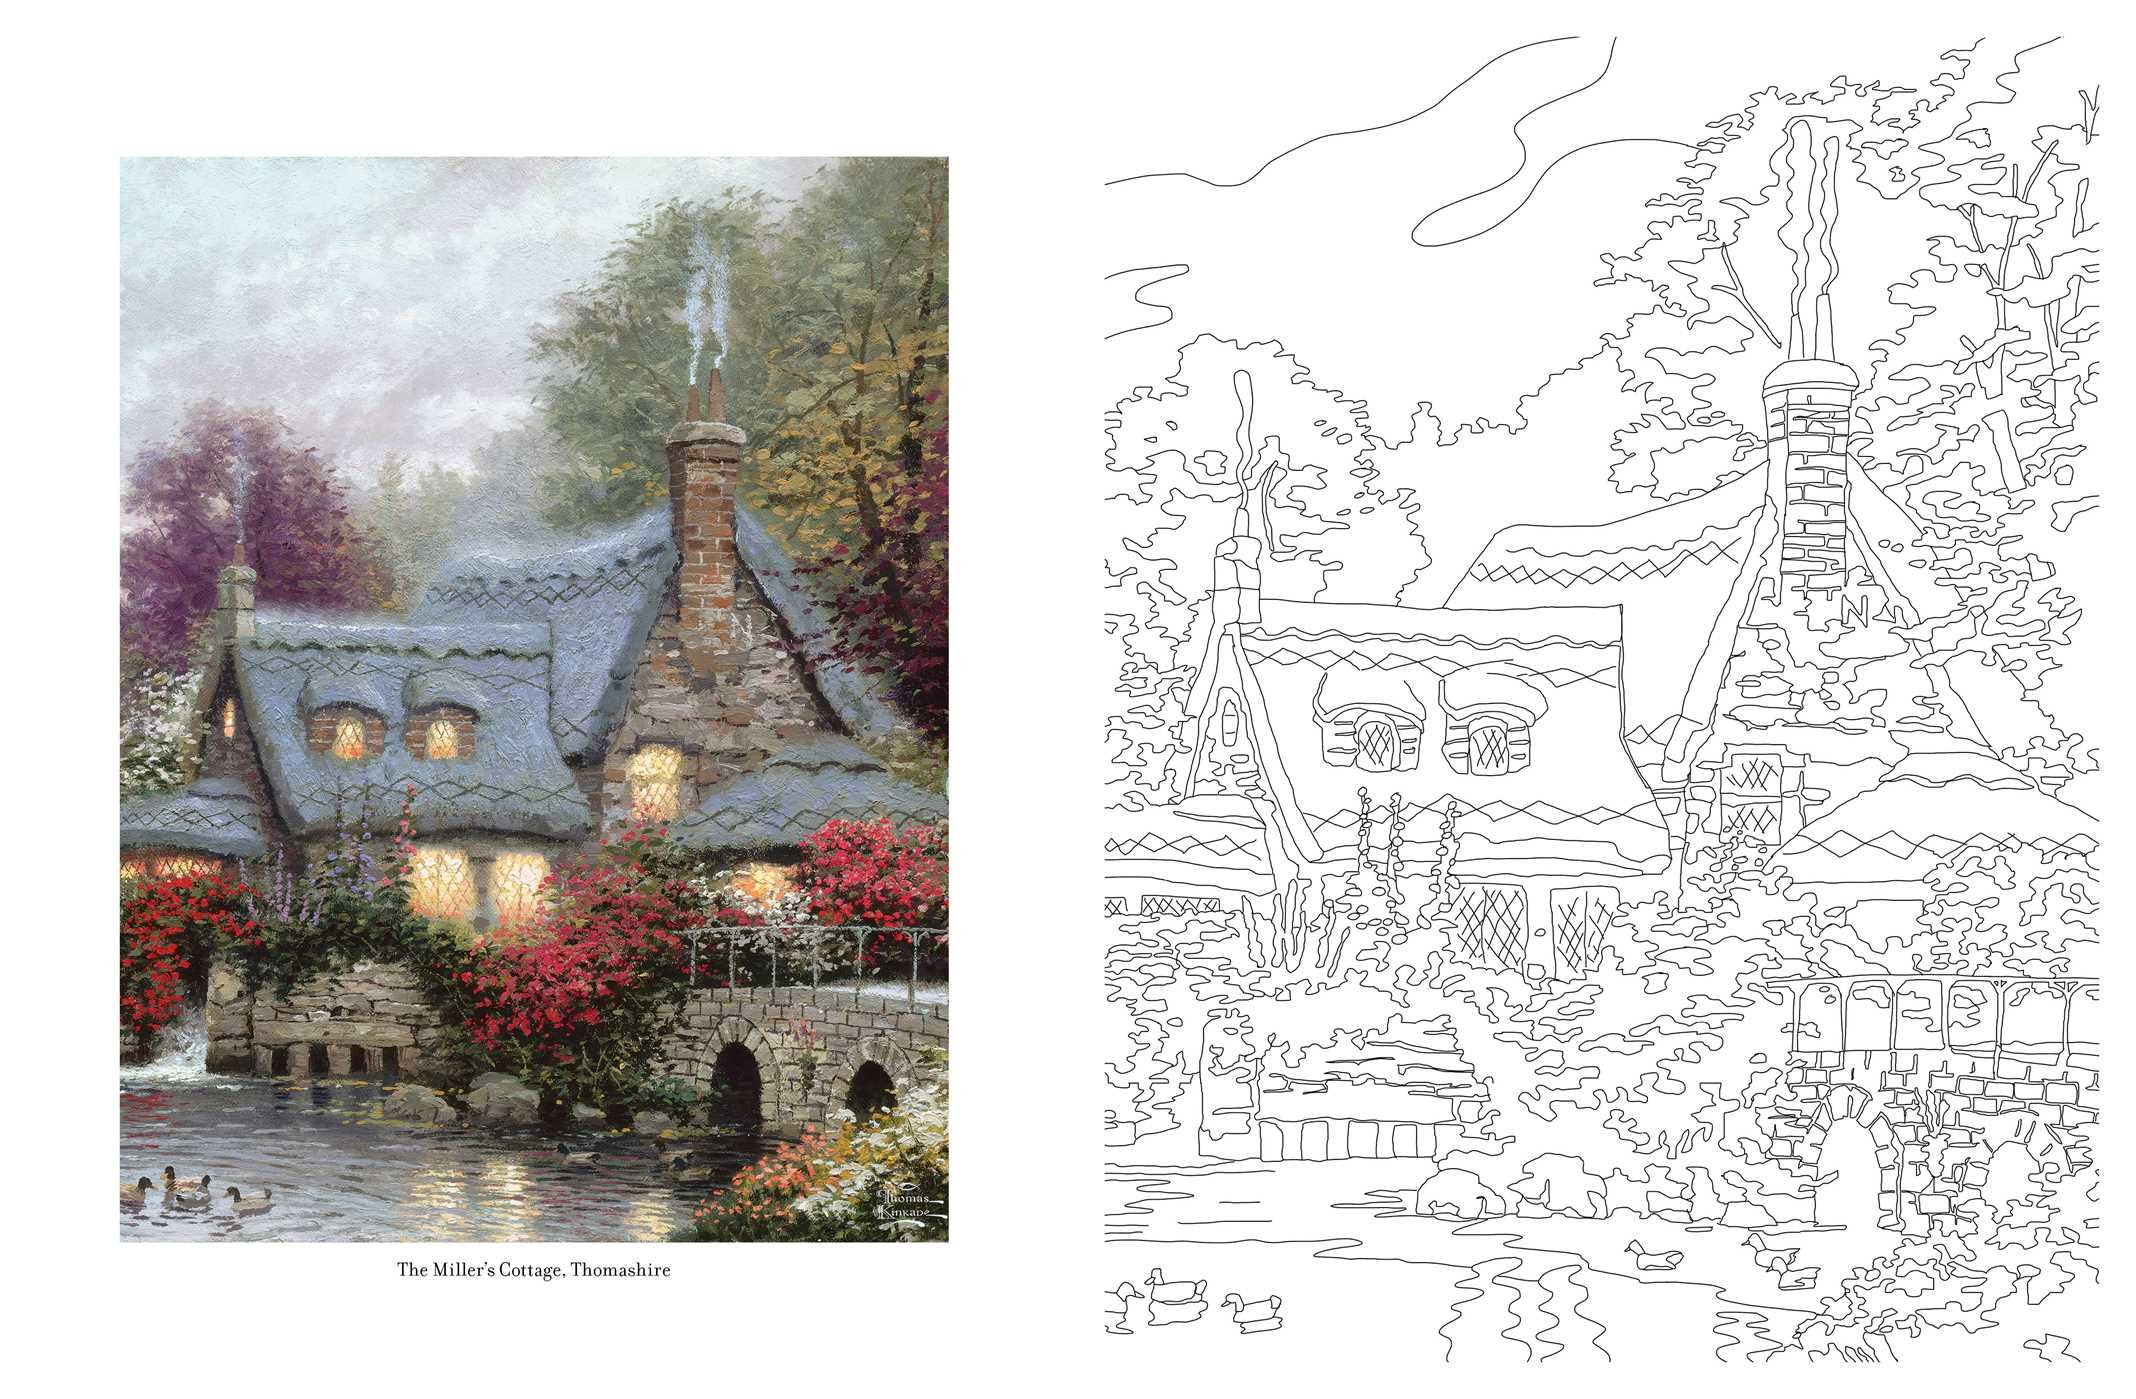 The coloring book project 2nd edition - Amazon Com Posh Adult Coloring Book Thomas Kinkade Peaceful Moments Posh Coloring Books 9781449486396 Thomas Kinkade Books